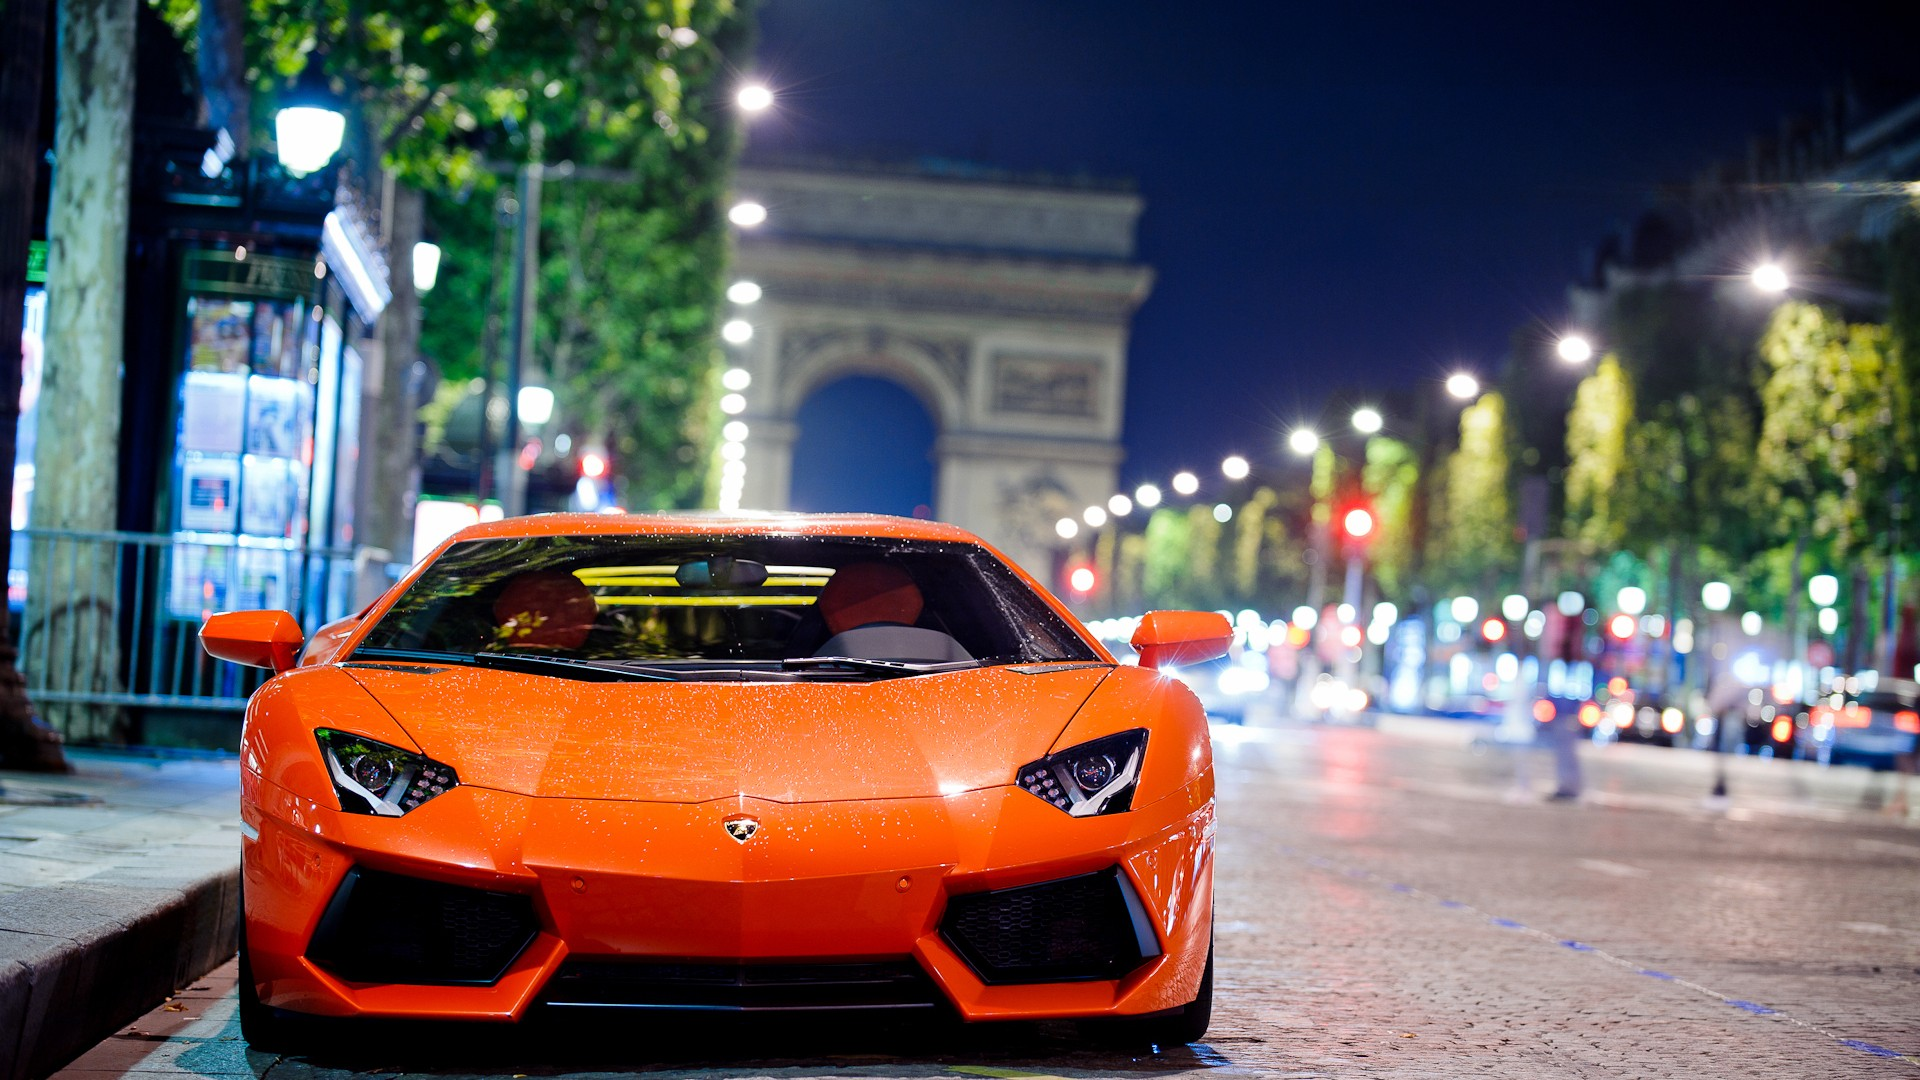 Lamborghini Aventador At Night Wallpaper Hd Car Wallpapers Id 3332